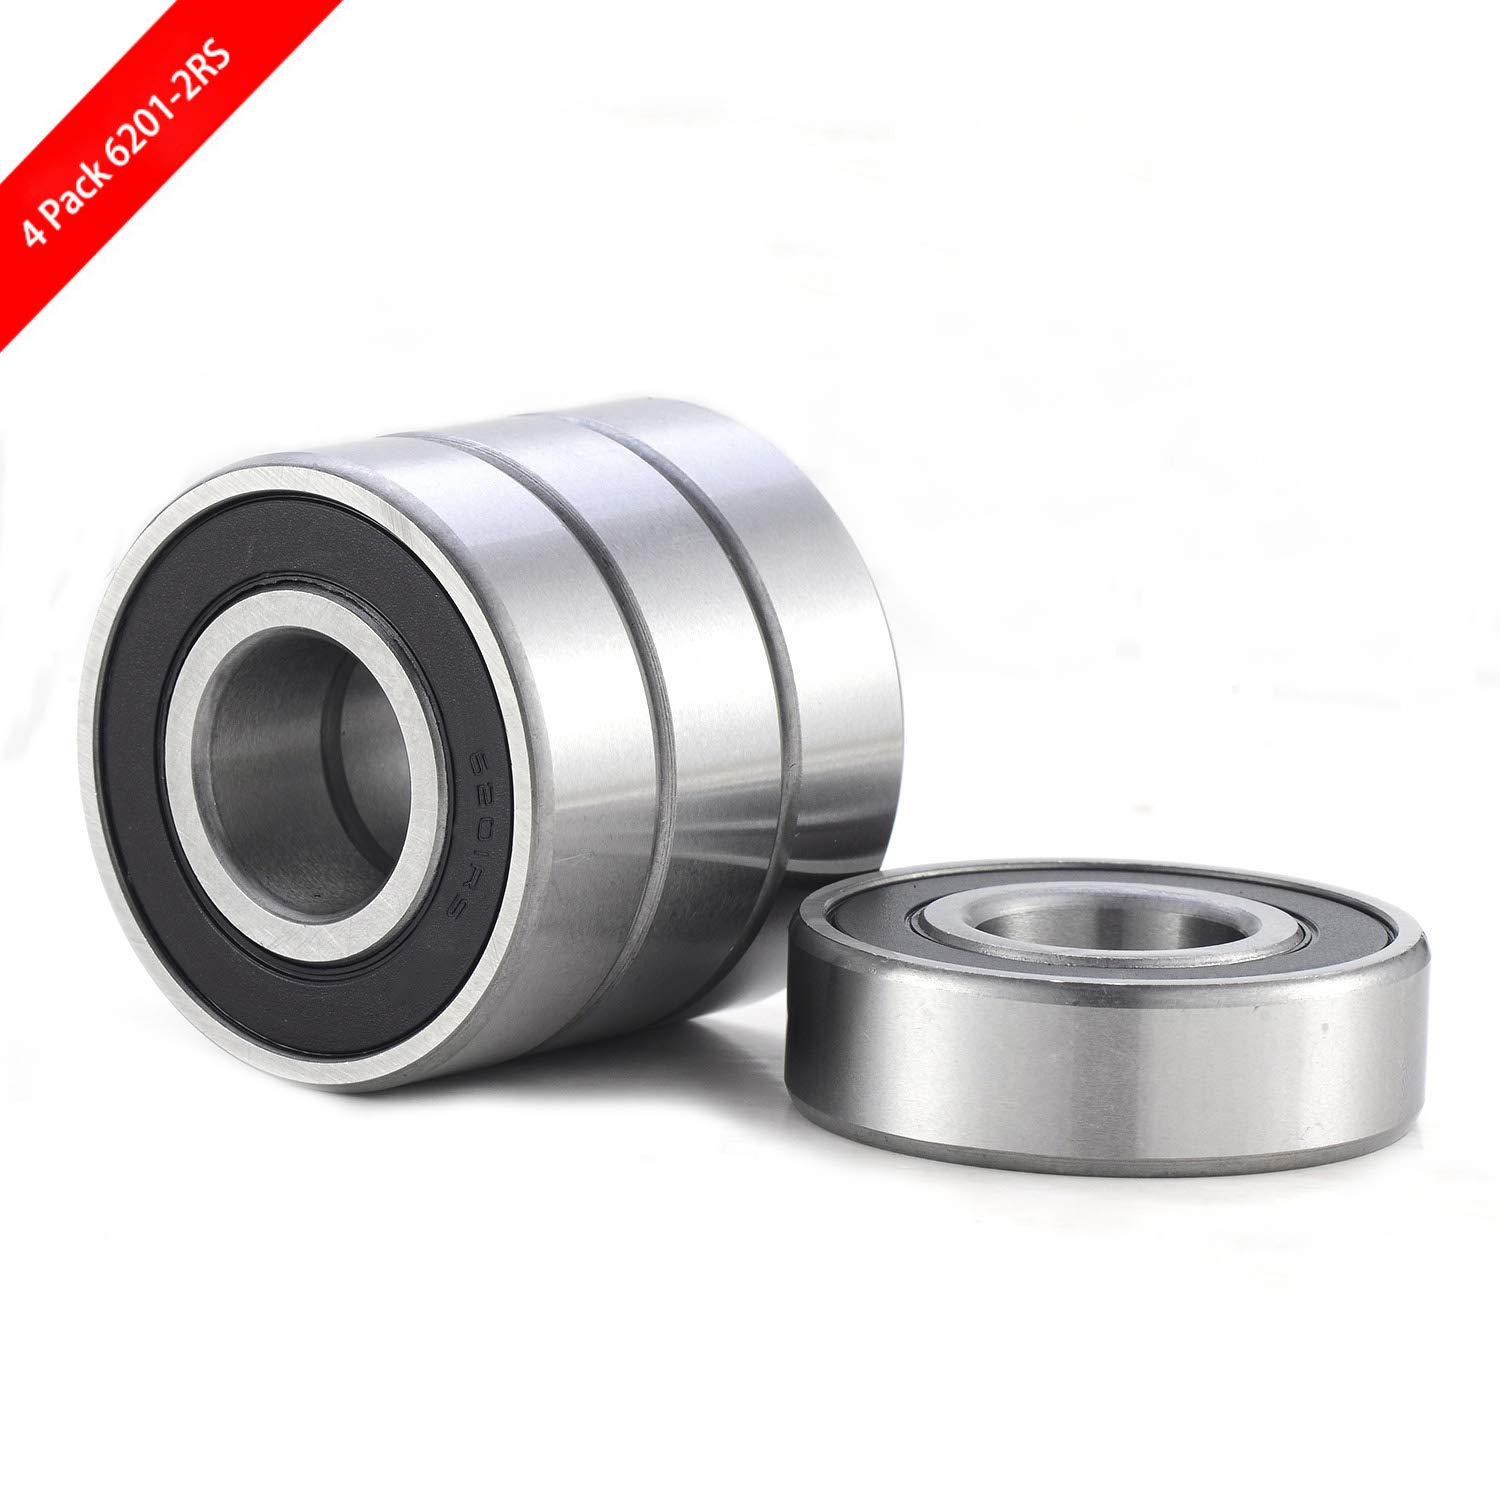 Pre-Lubricated and Stable Performance and Cost Effective Deep Groove Ball Bearings. TIMKEN 6200-2RS 5 Pcs Double Rubber Seal Bearings 10x30x9mm